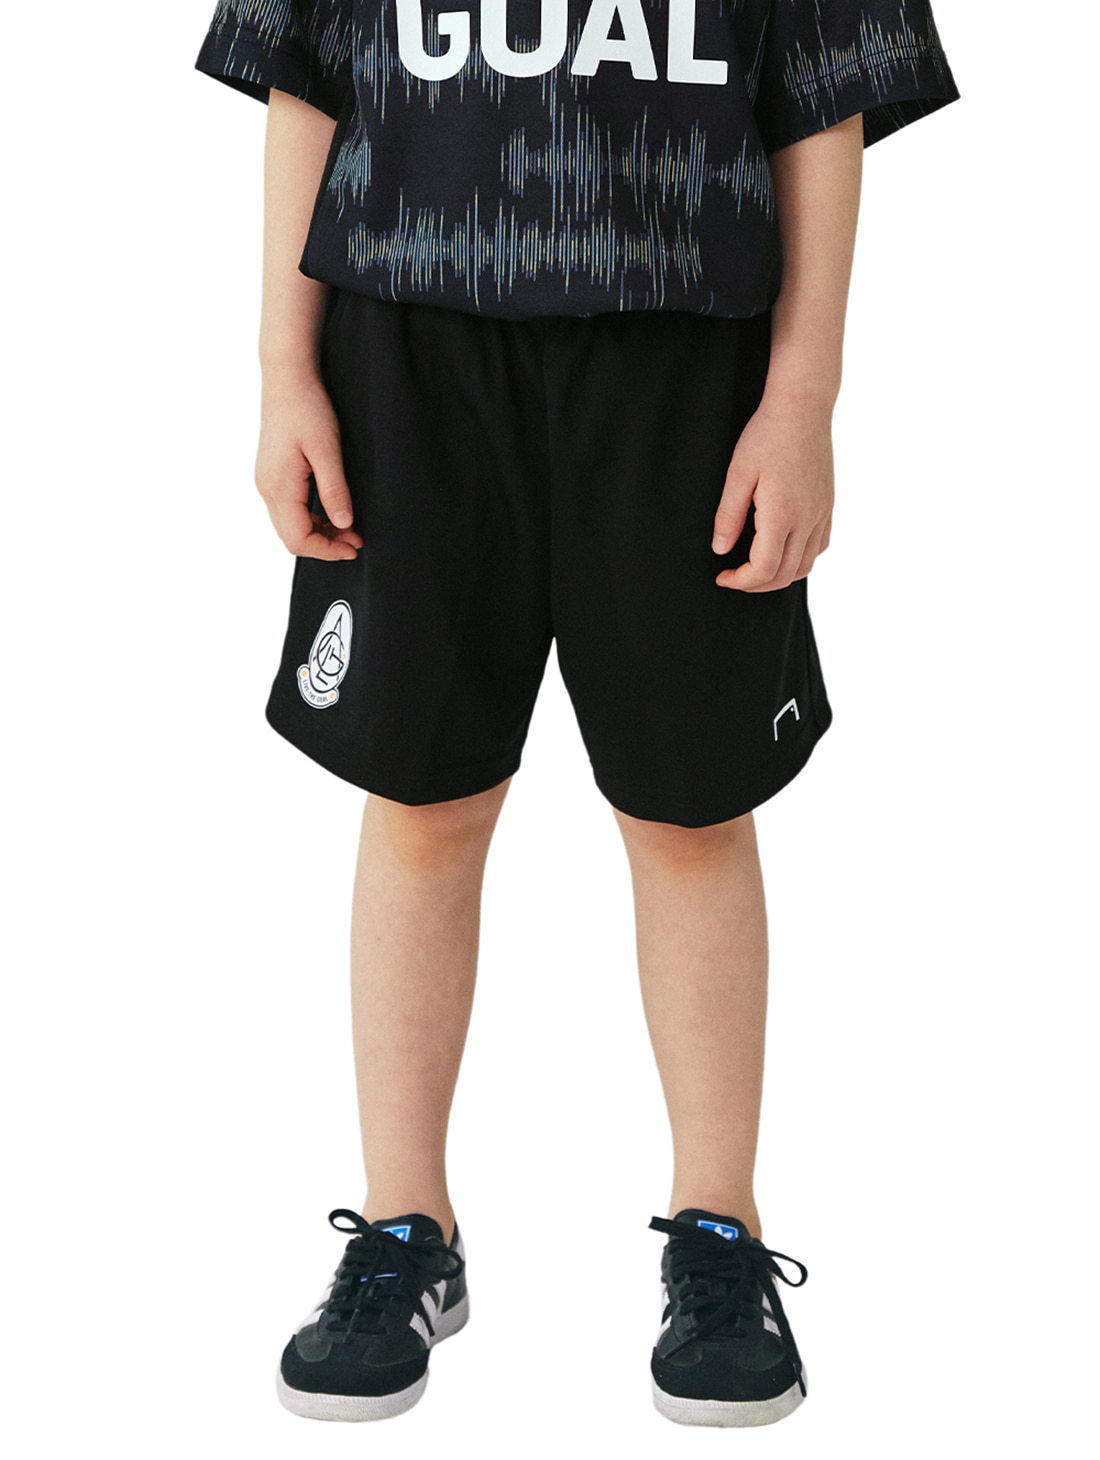 GOALSTUDIO (KIDS) PLAYER EMBLEM SHORTS - BLACK